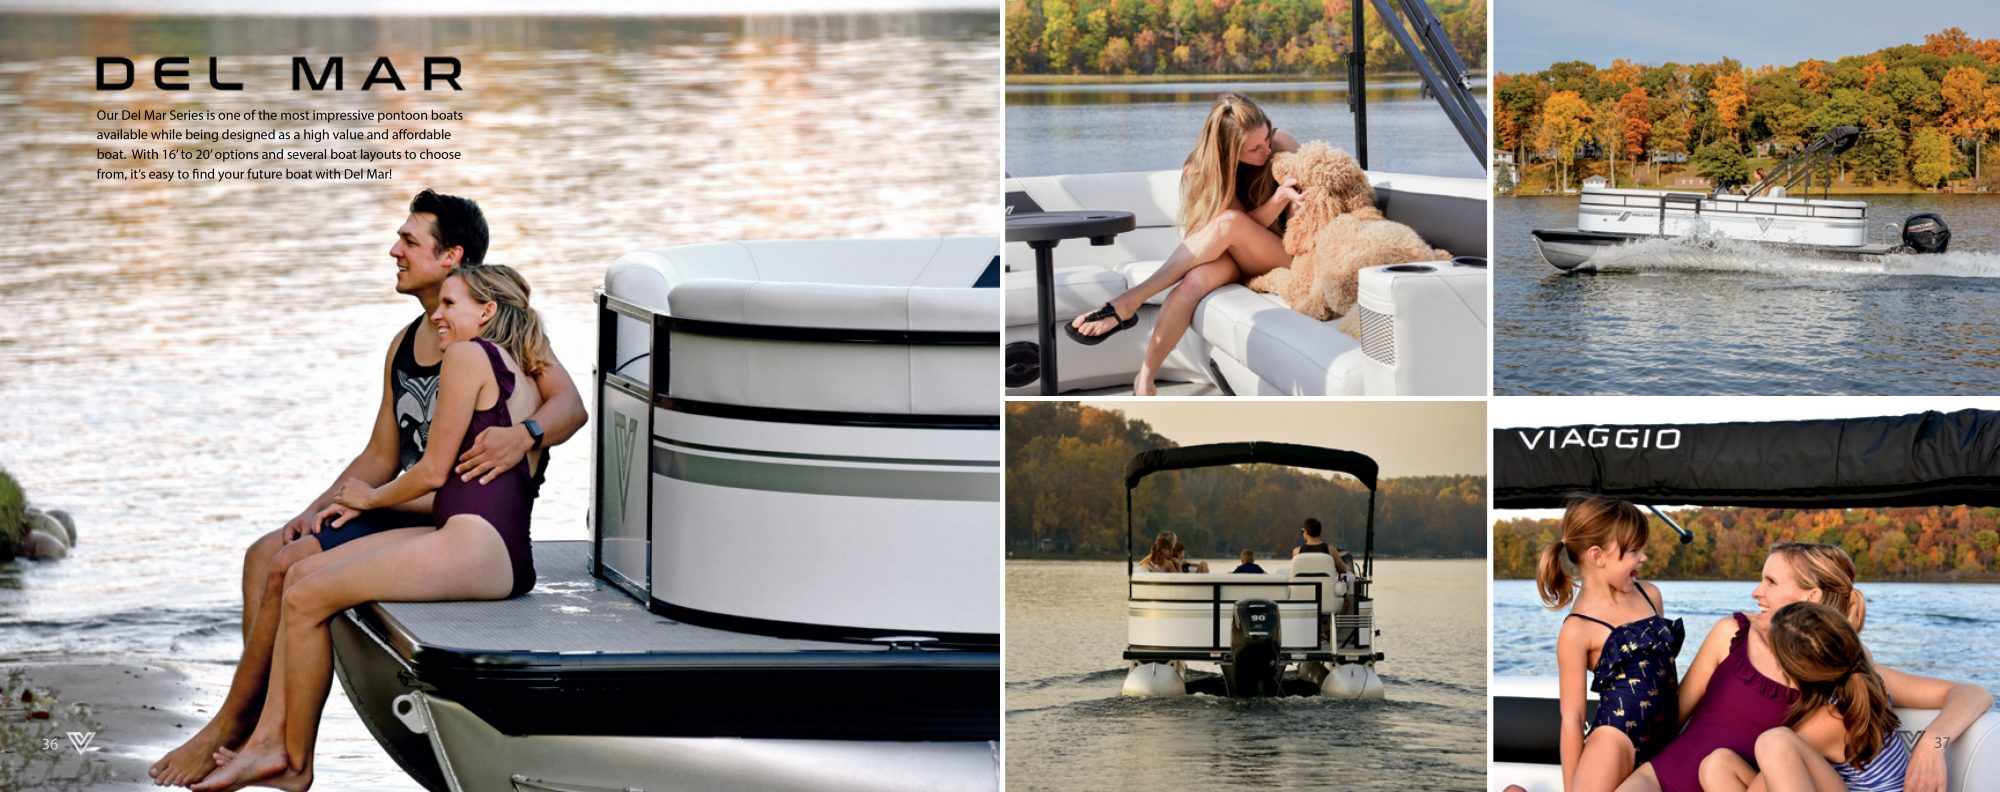 Del Mar Pontoon sold by Captiva Boat Sales and Service